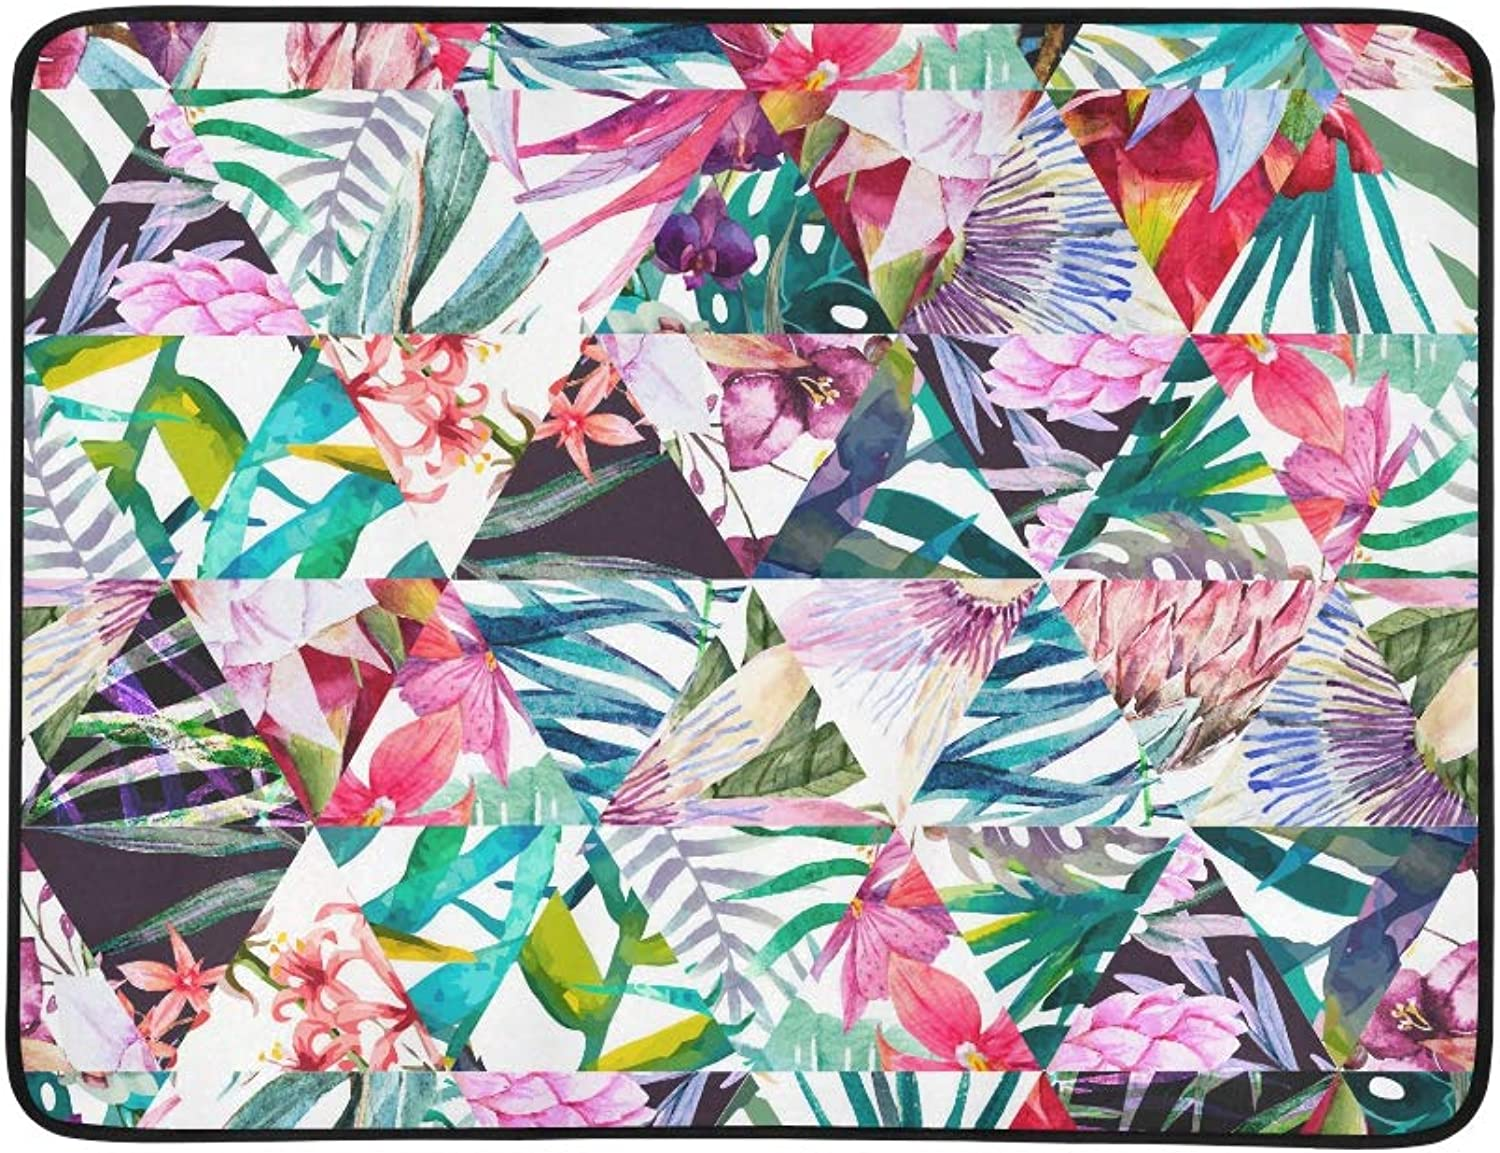 Watercolor Tropical Pattern in Patchwork Style Pattern Portable and Foldable Blanket Mat 60x78 Inch Handy Mat for Camping Picnic Beach Indoor Outdoor Travel